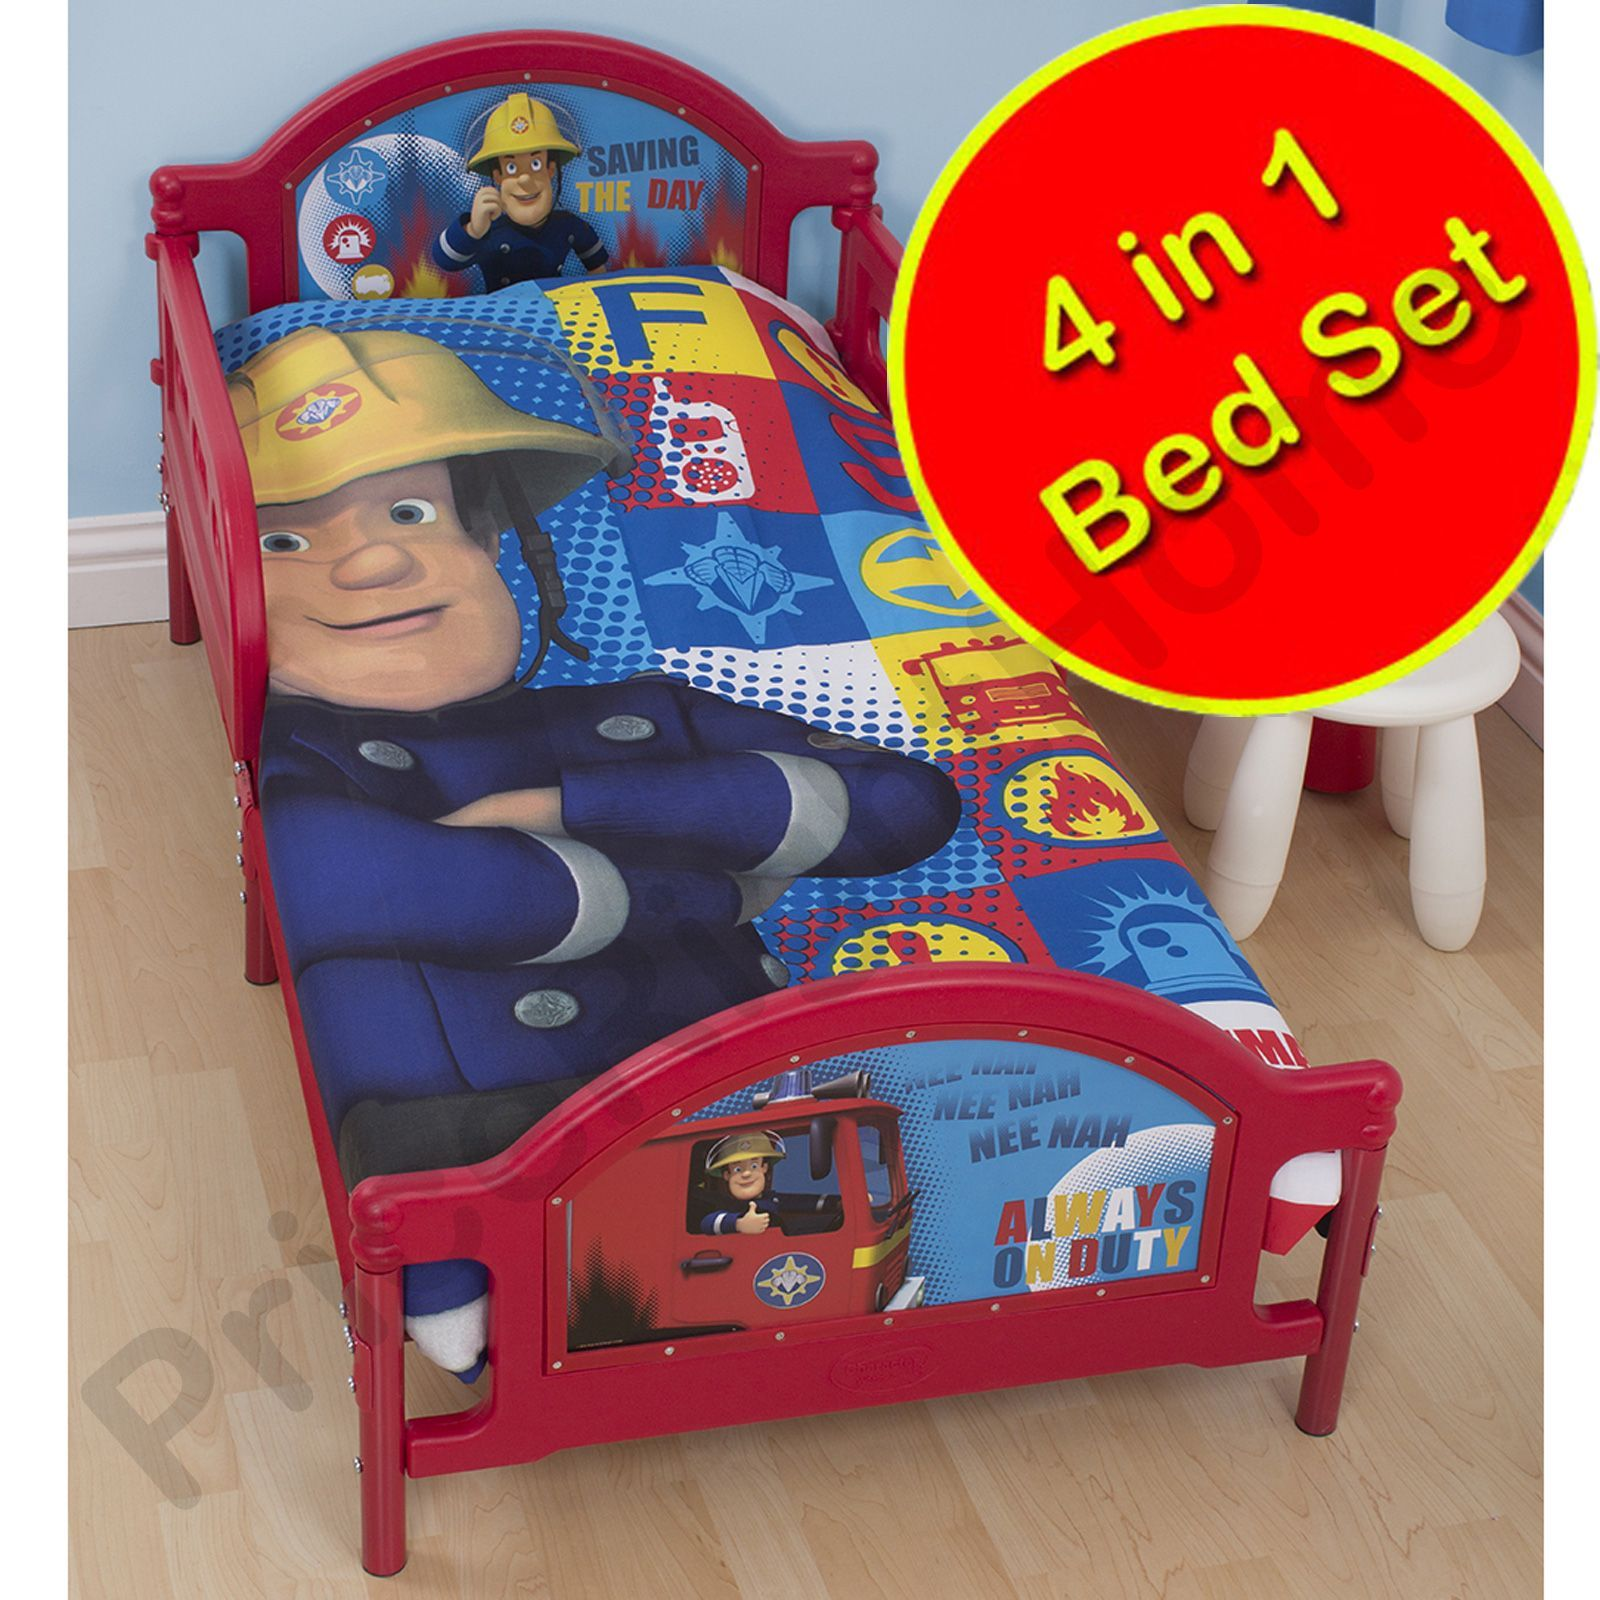 Fireman Sam Bedding Single Double Junior Duvet Cover Sets Boys Bedroom Ebay